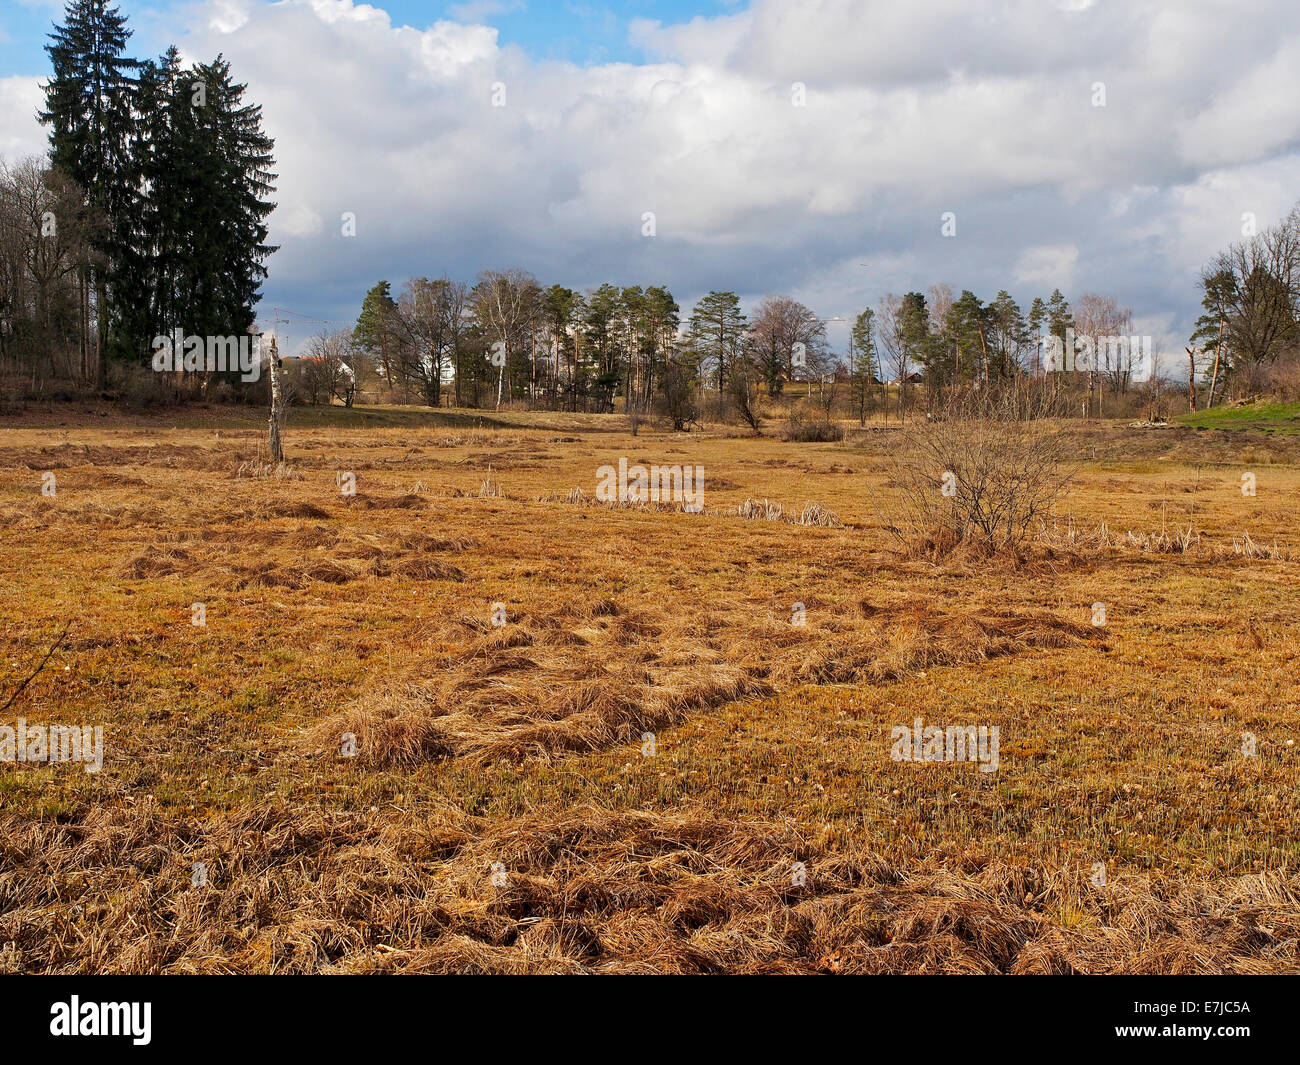 Switzerland, canton Zurich, Schwerzenbach, humid area, scenery, autumn, moor - Stock Image